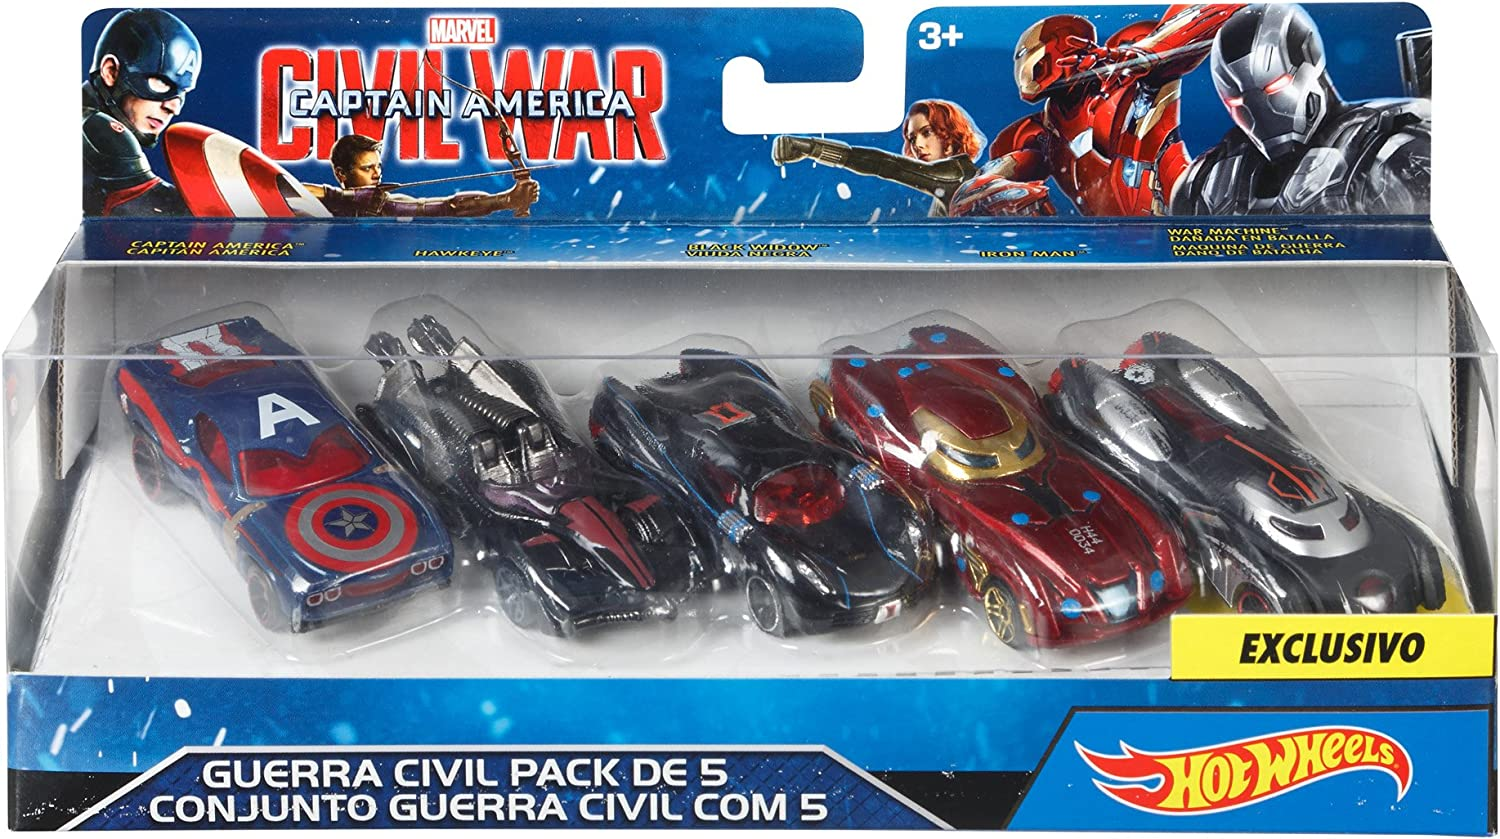 Hot Wheels Marvel Civil War Character Car  Pack of 5